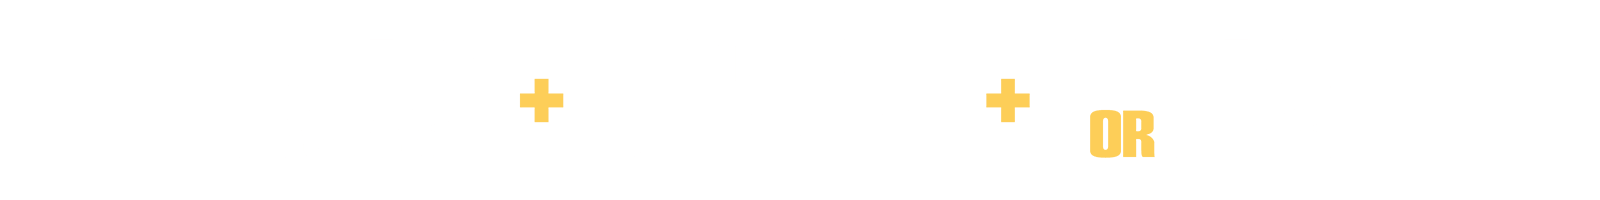 Choice of package + Digital Distribution + Mastering Or Design